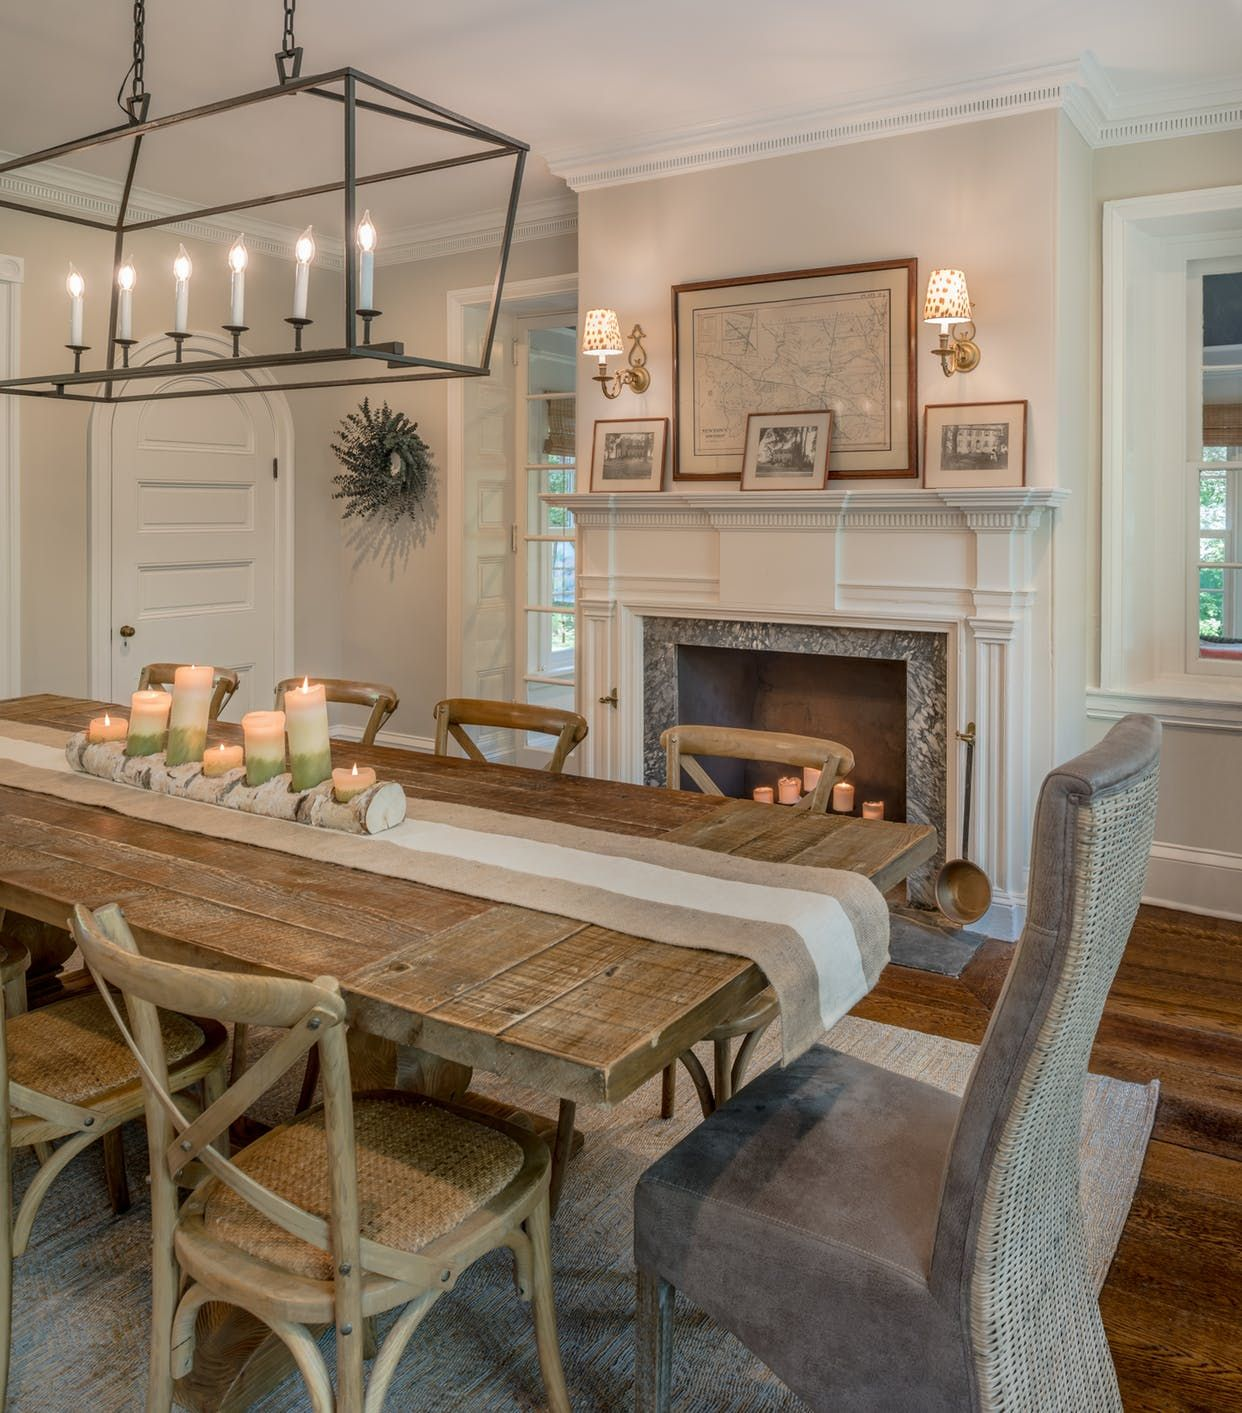 Renovated dining room of a 19th century Pennsylvania